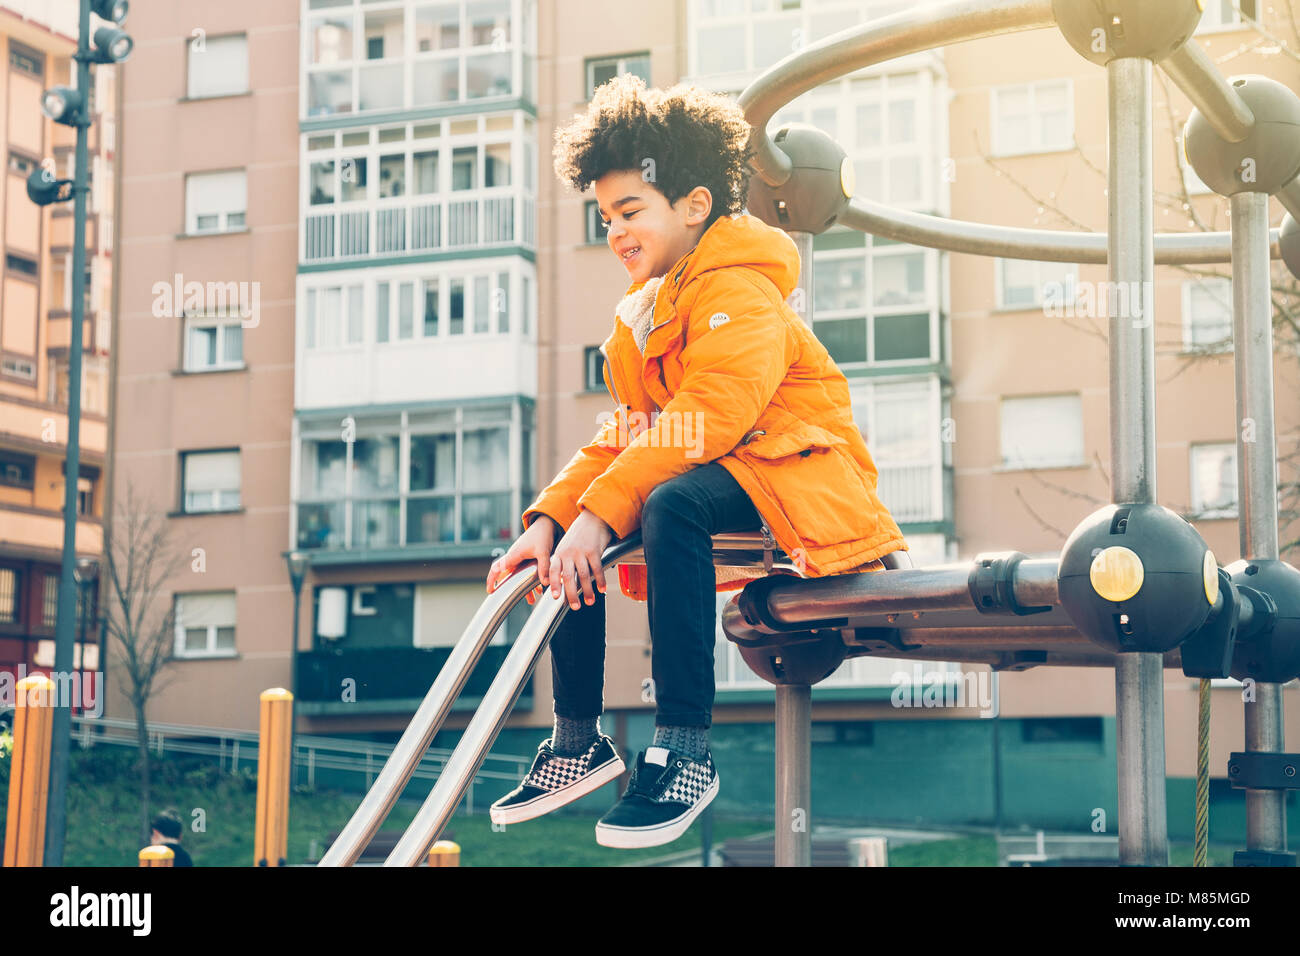 Happy kid in orange coat climbing on the playground in a sunny day - Stock Image